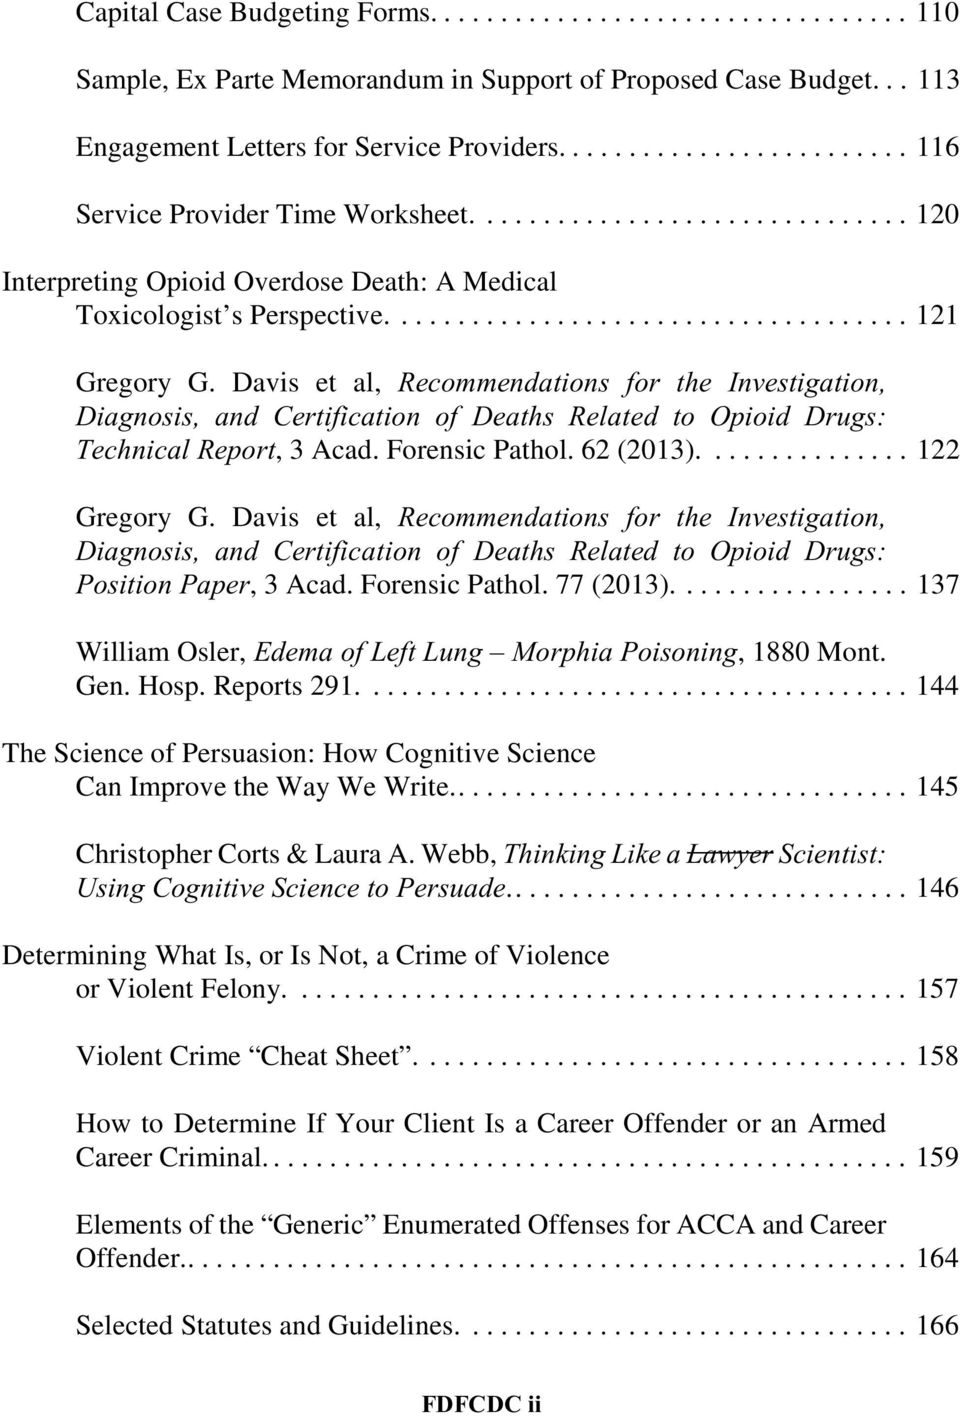 Davis et al, Recommendations for the Investigation, Diagnosis, and Certification of Deaths Related to Opioid Drugs: Technical Report, 3 Acad. Forensic Pathol. 62 (2013)............... 122 Gregory G.